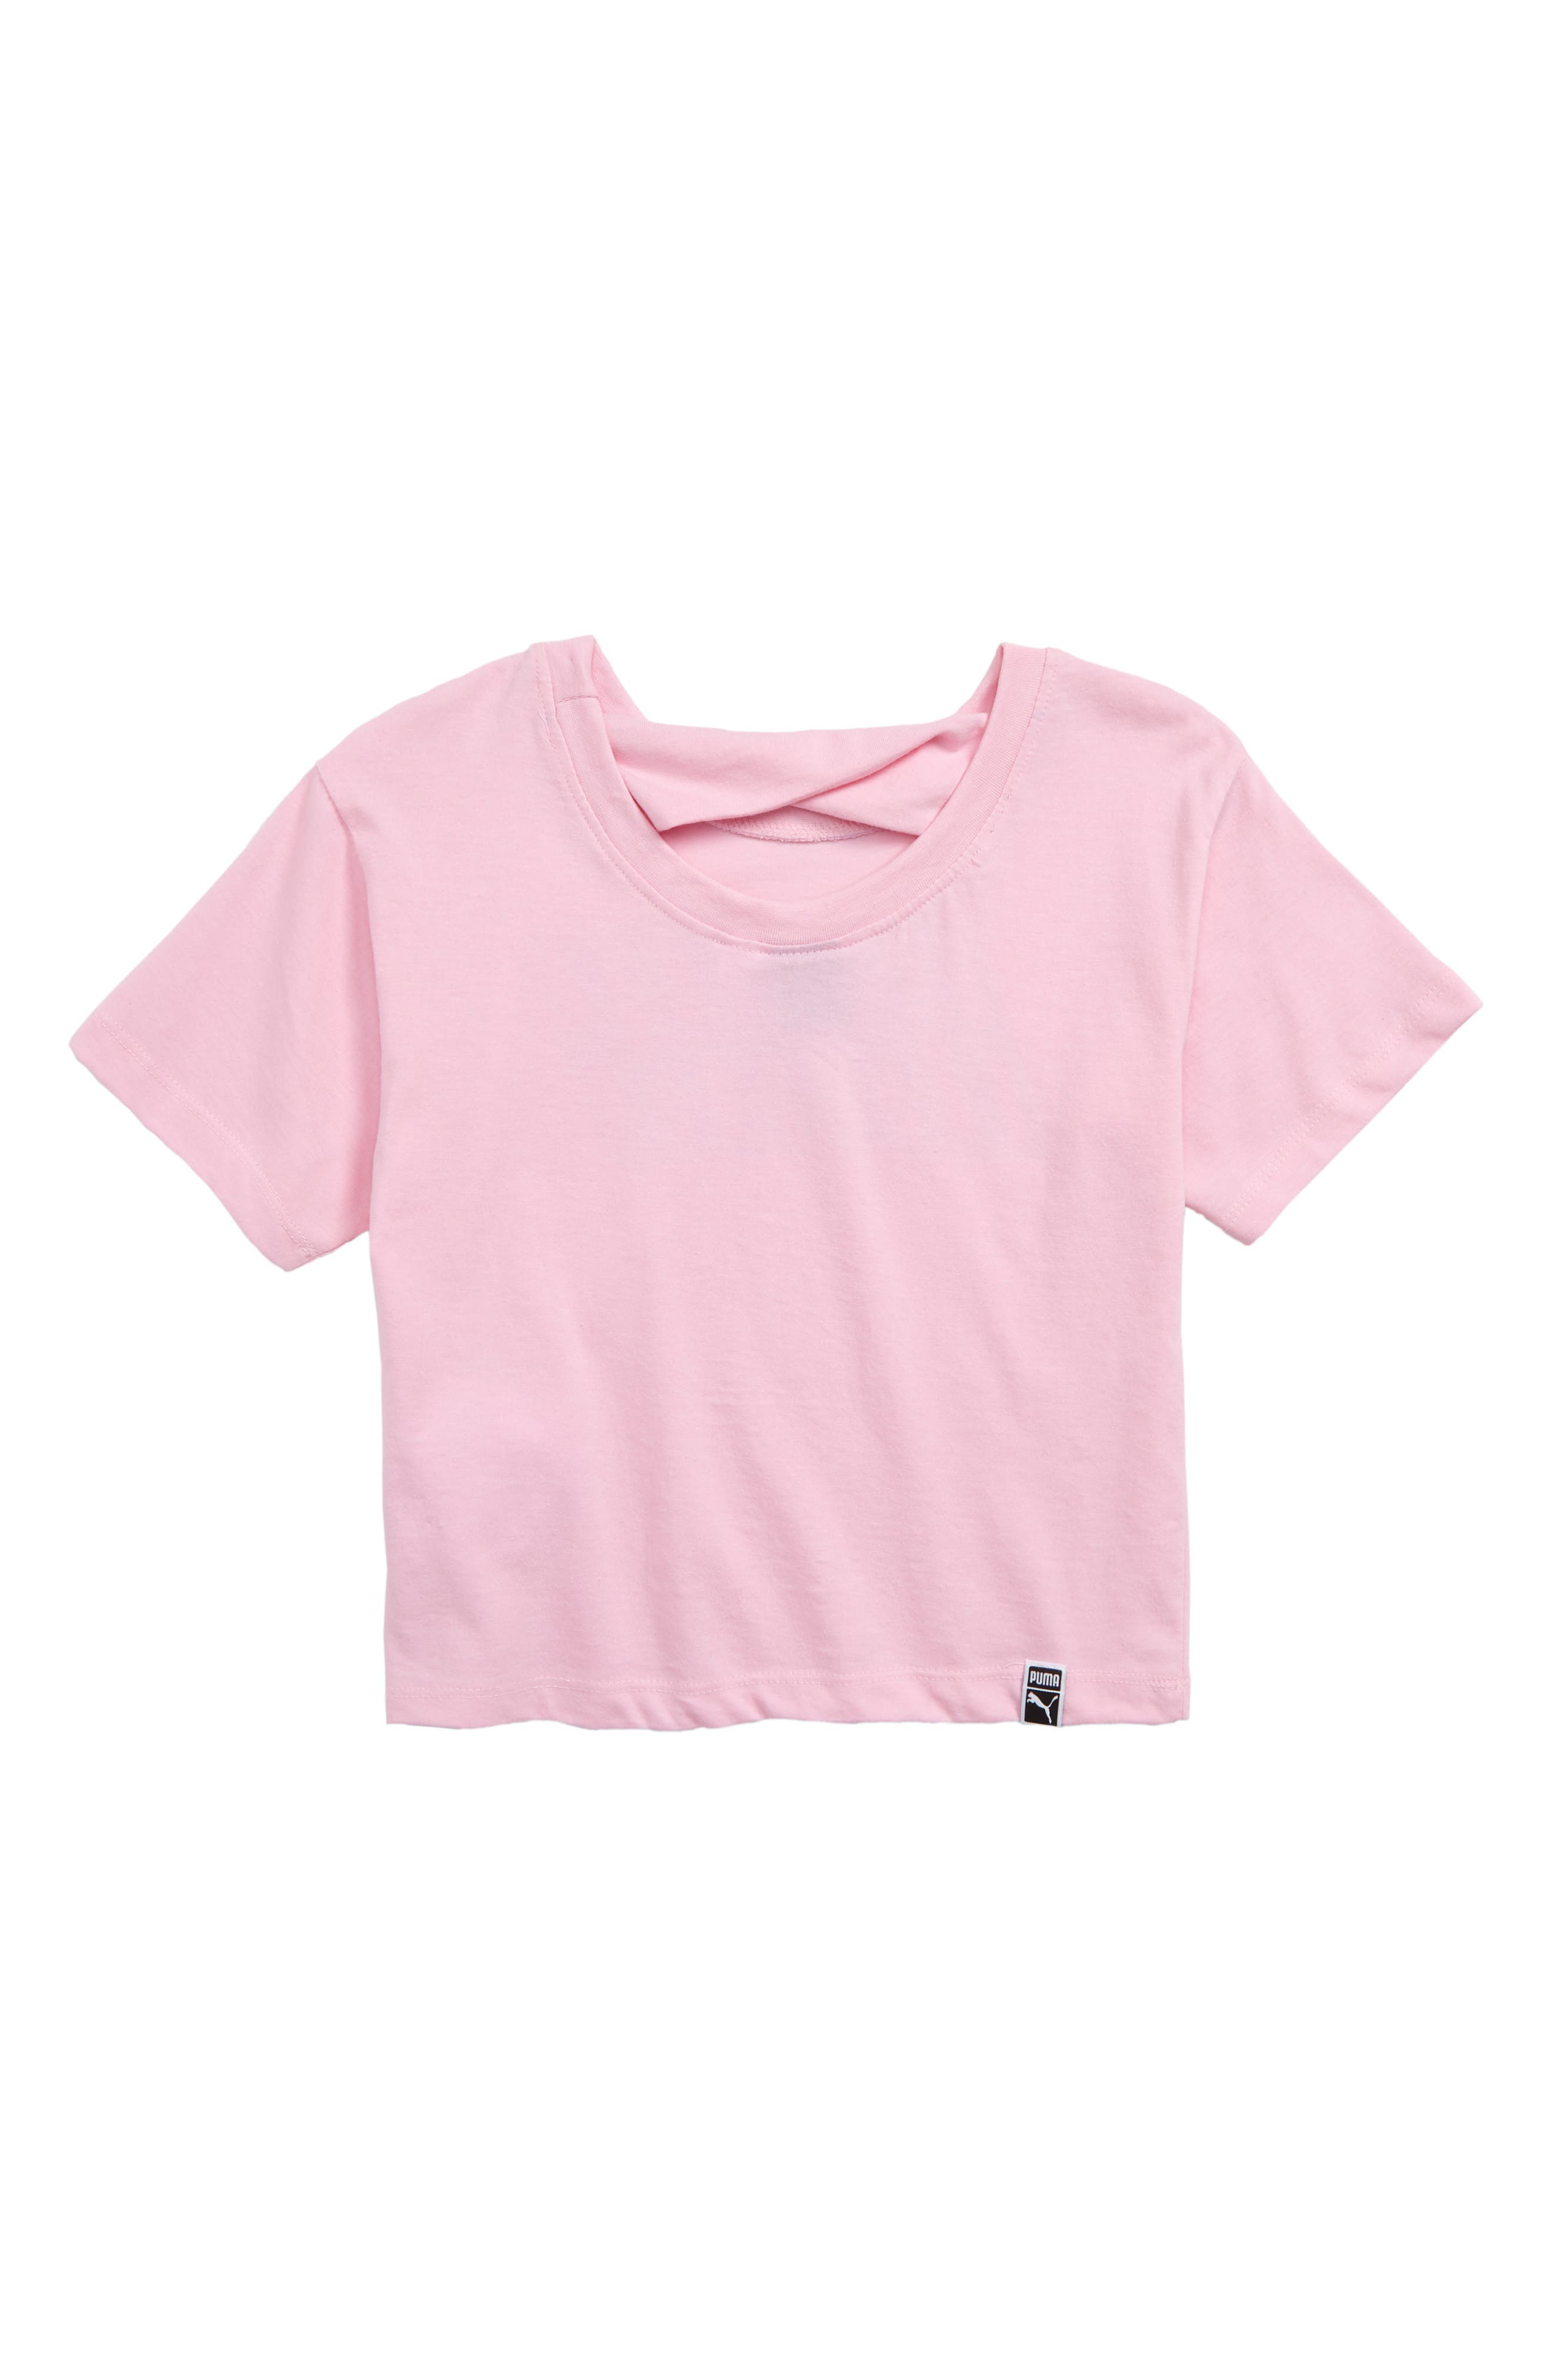 PUMA,                             Twist Back Crop Logo Tee,                             Alternate thumbnail 2, color,                             PALE PINK